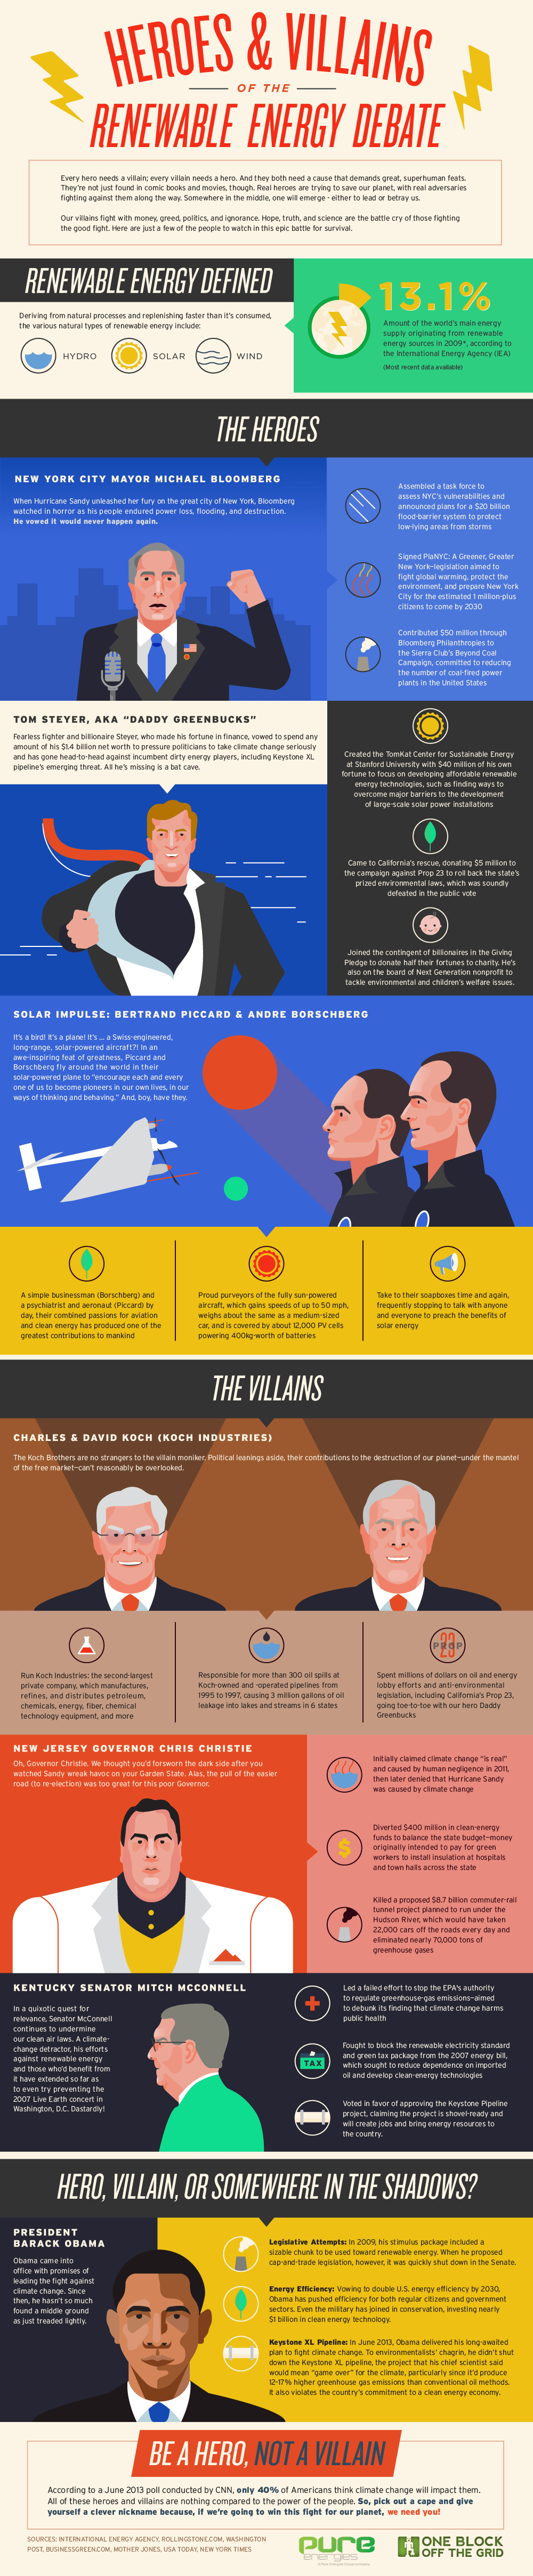 heroes-and-villains-of-the-renewable-energy-debate_52166c84f1536